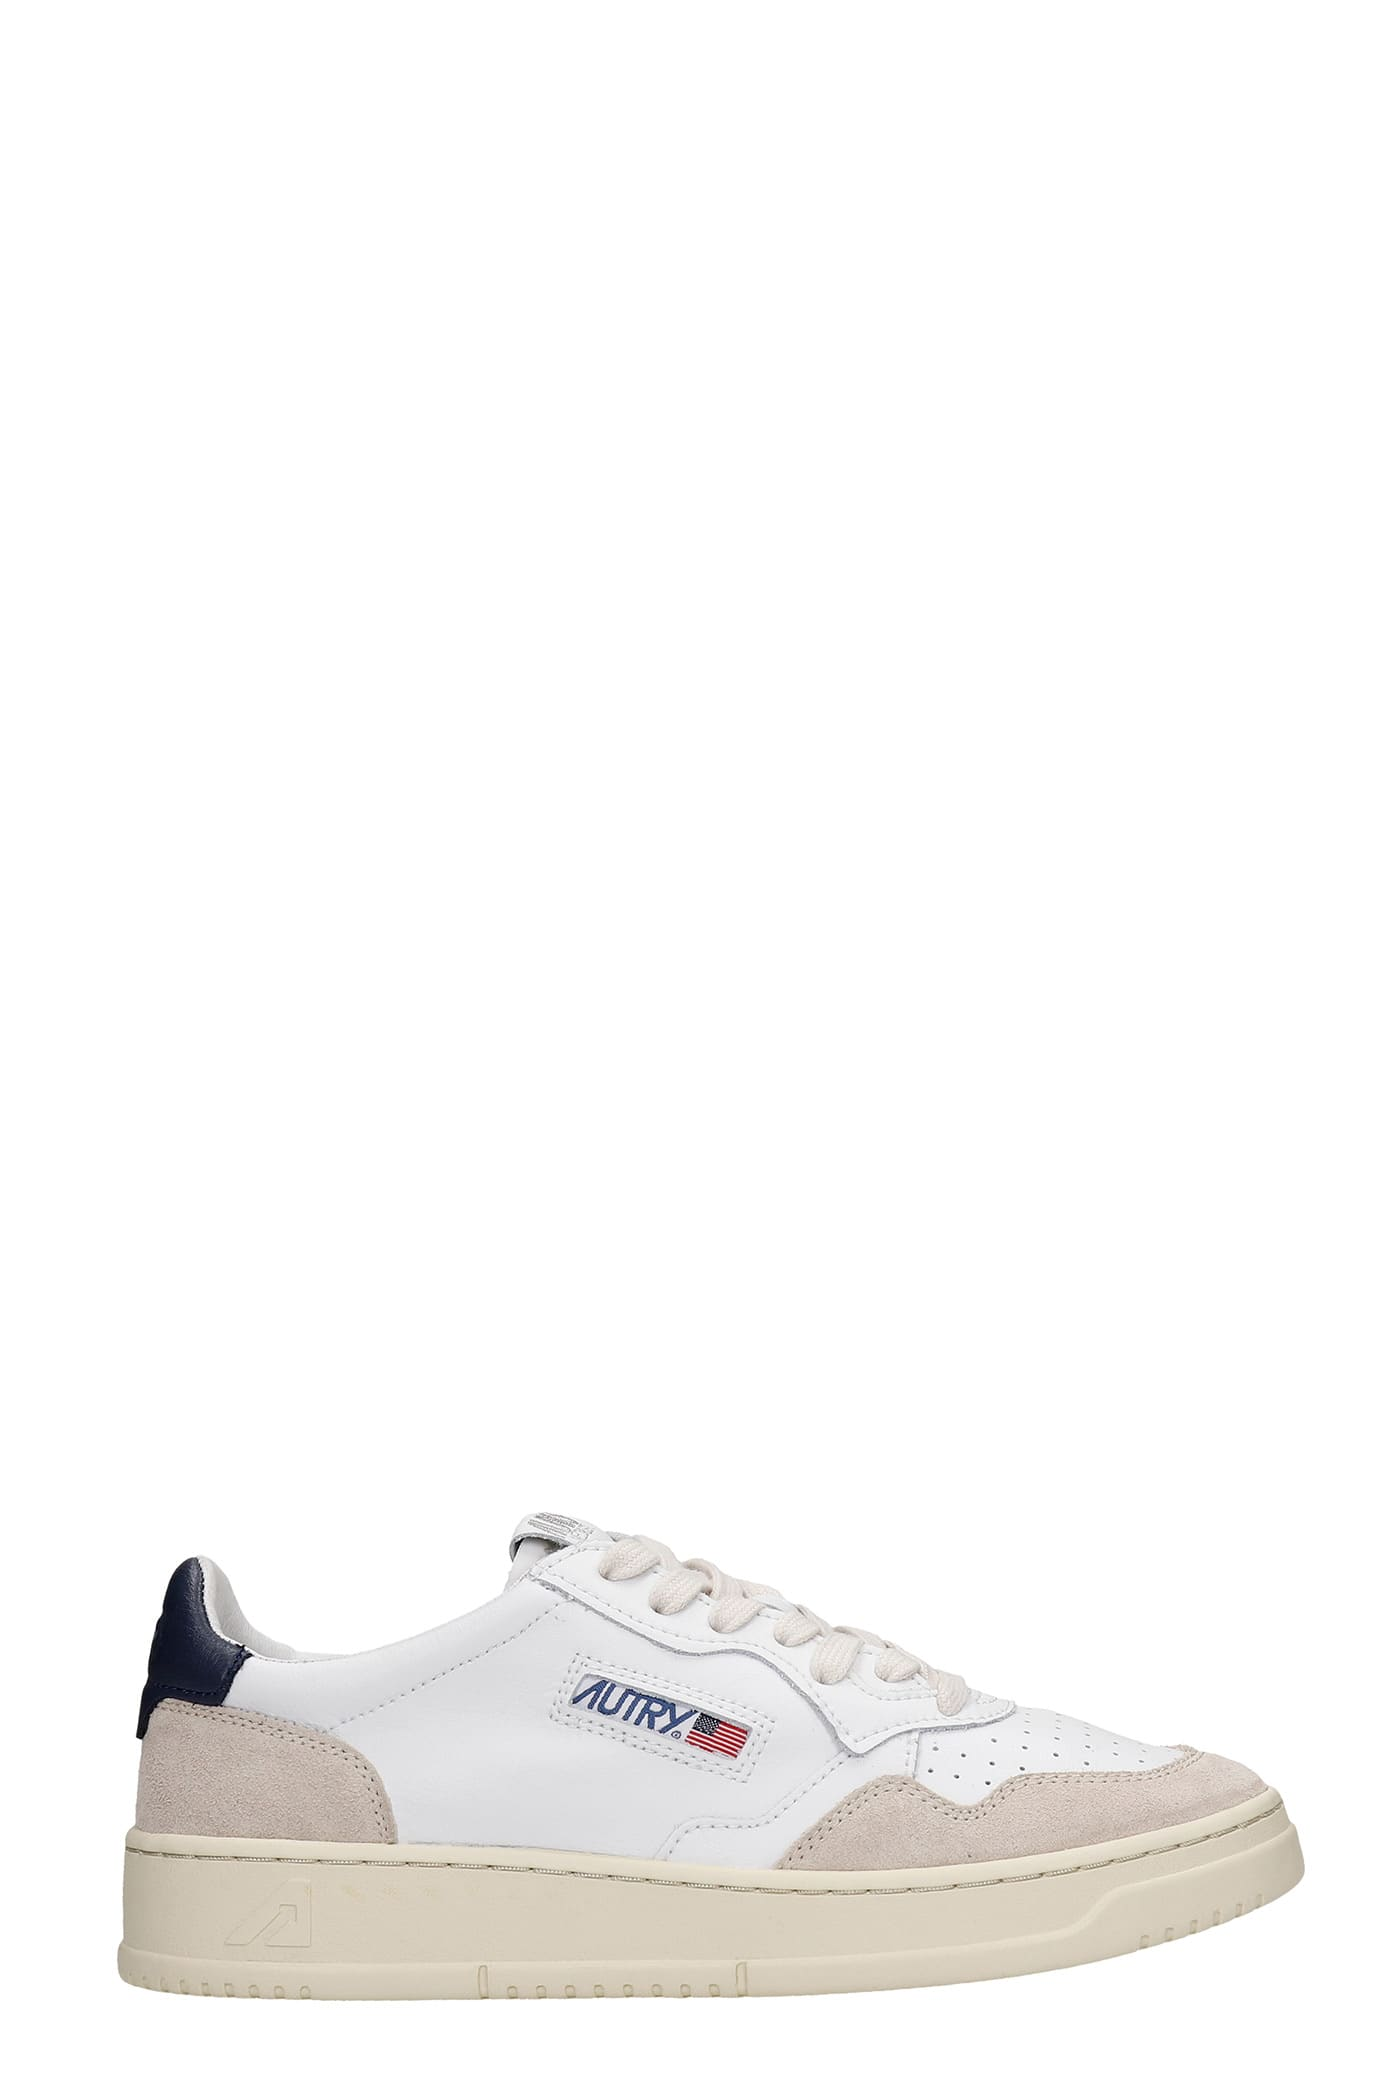 Autry 01 SNEAKERS IN WHITE SUEDE AND LEATHER